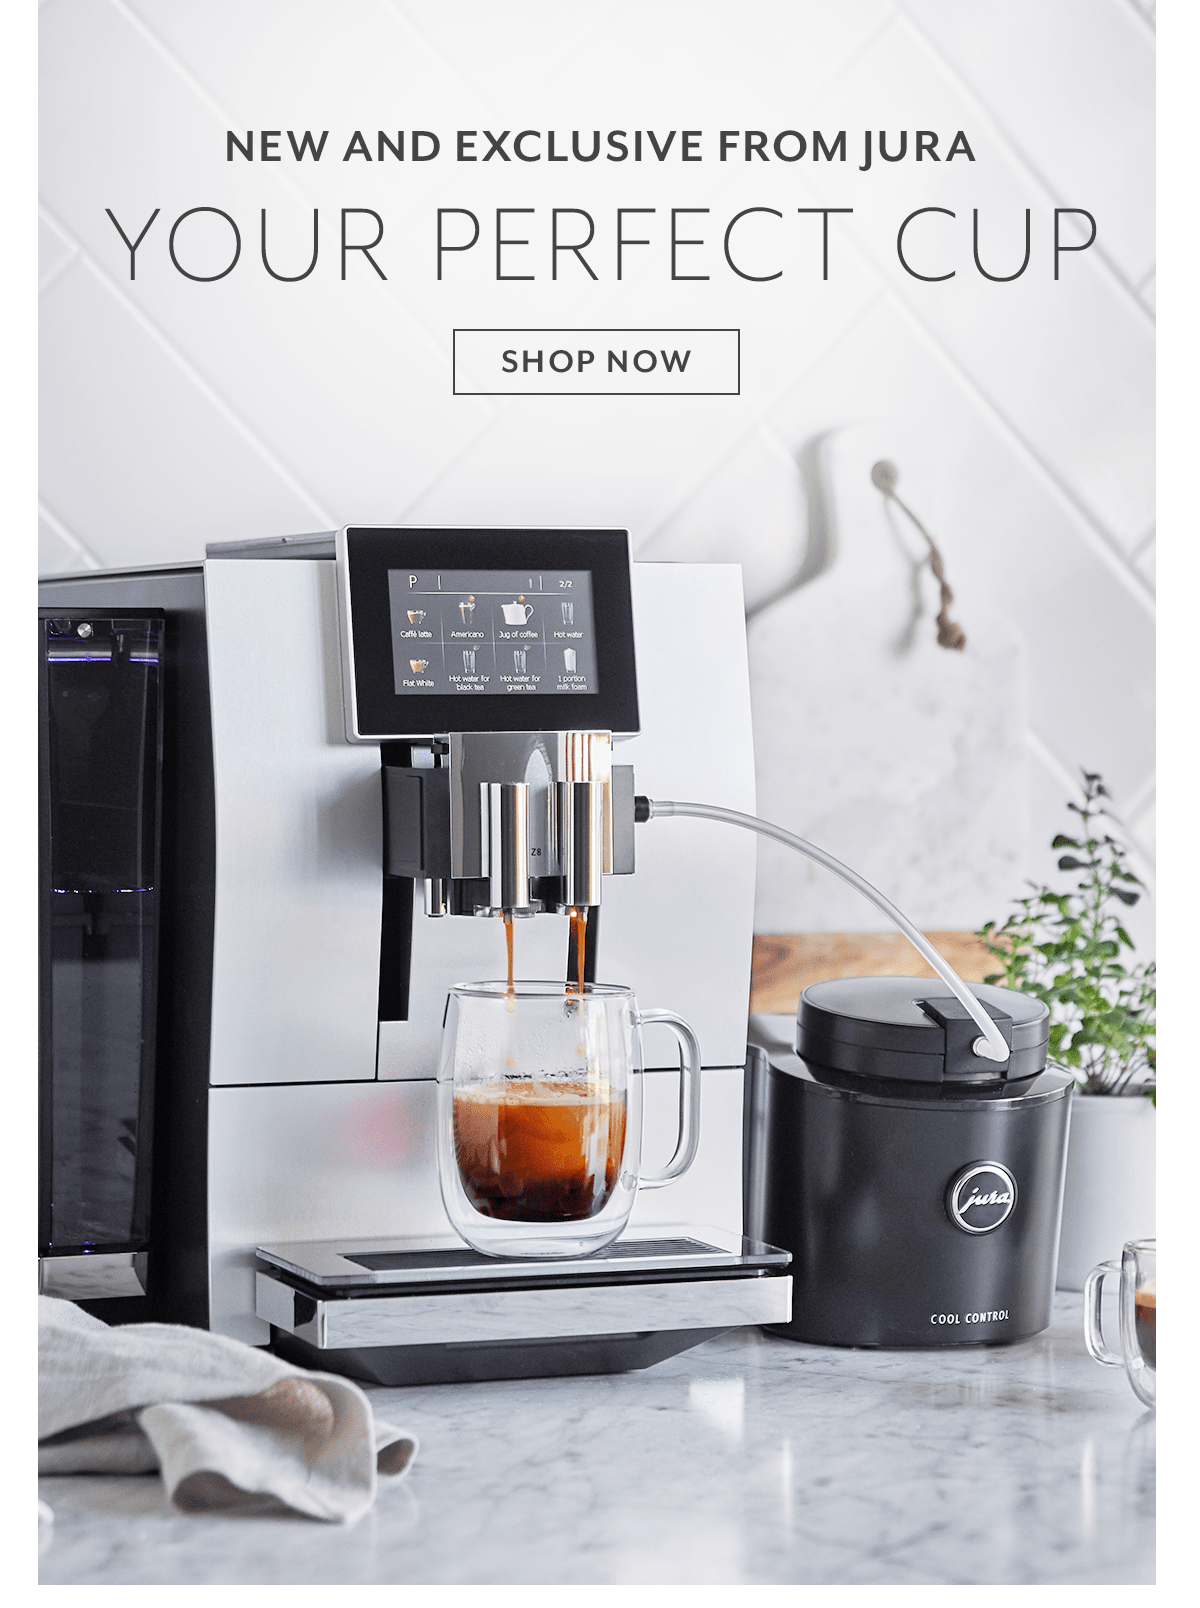 Your Perfect Cup